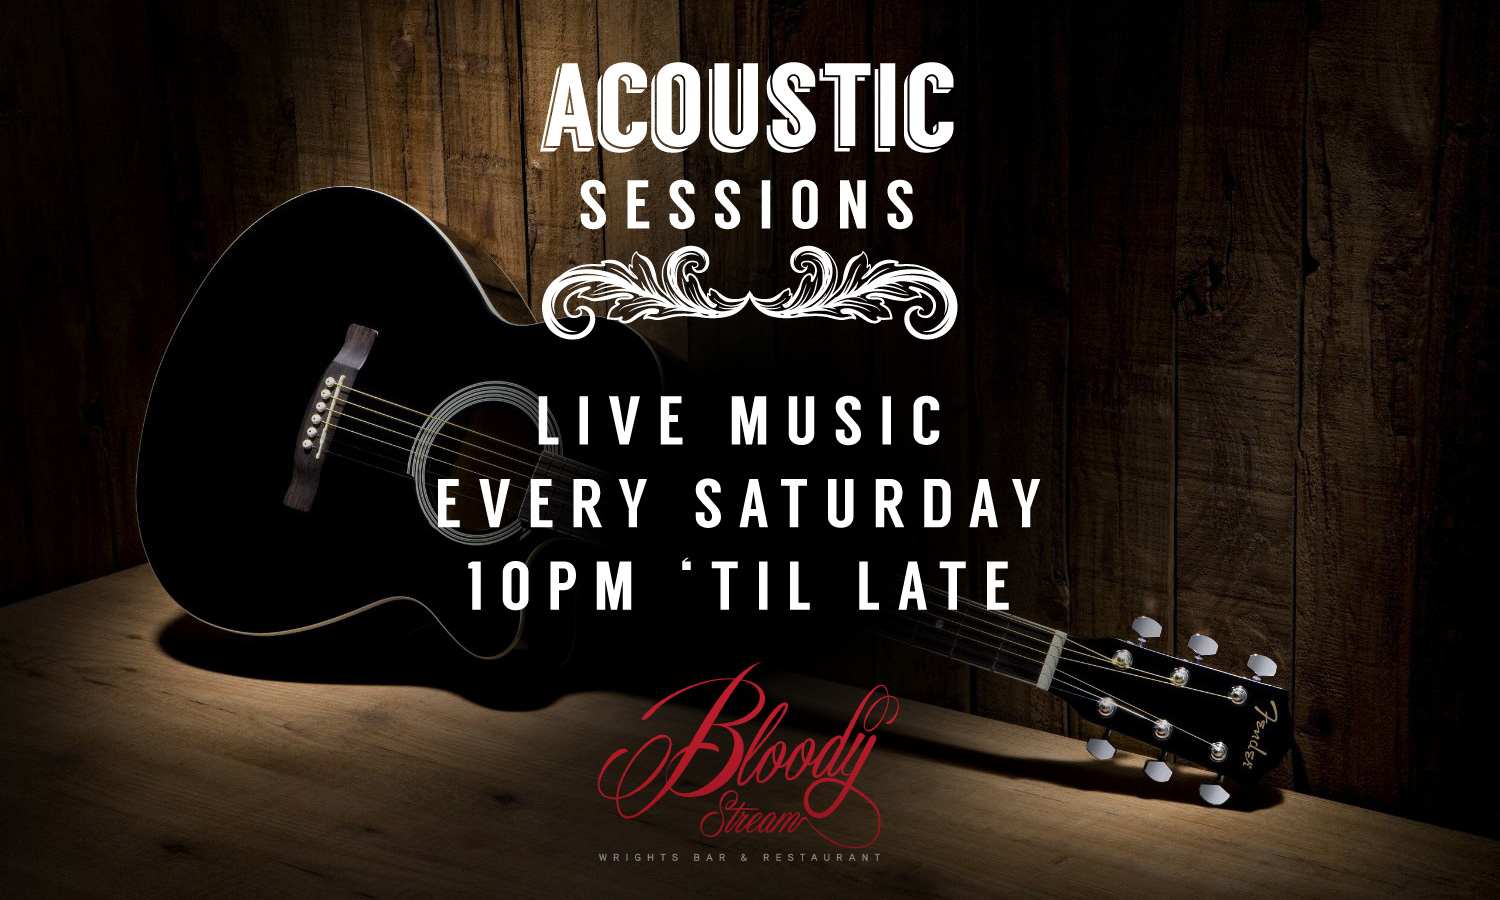 Acoustic Sessions at The Bloody Stream